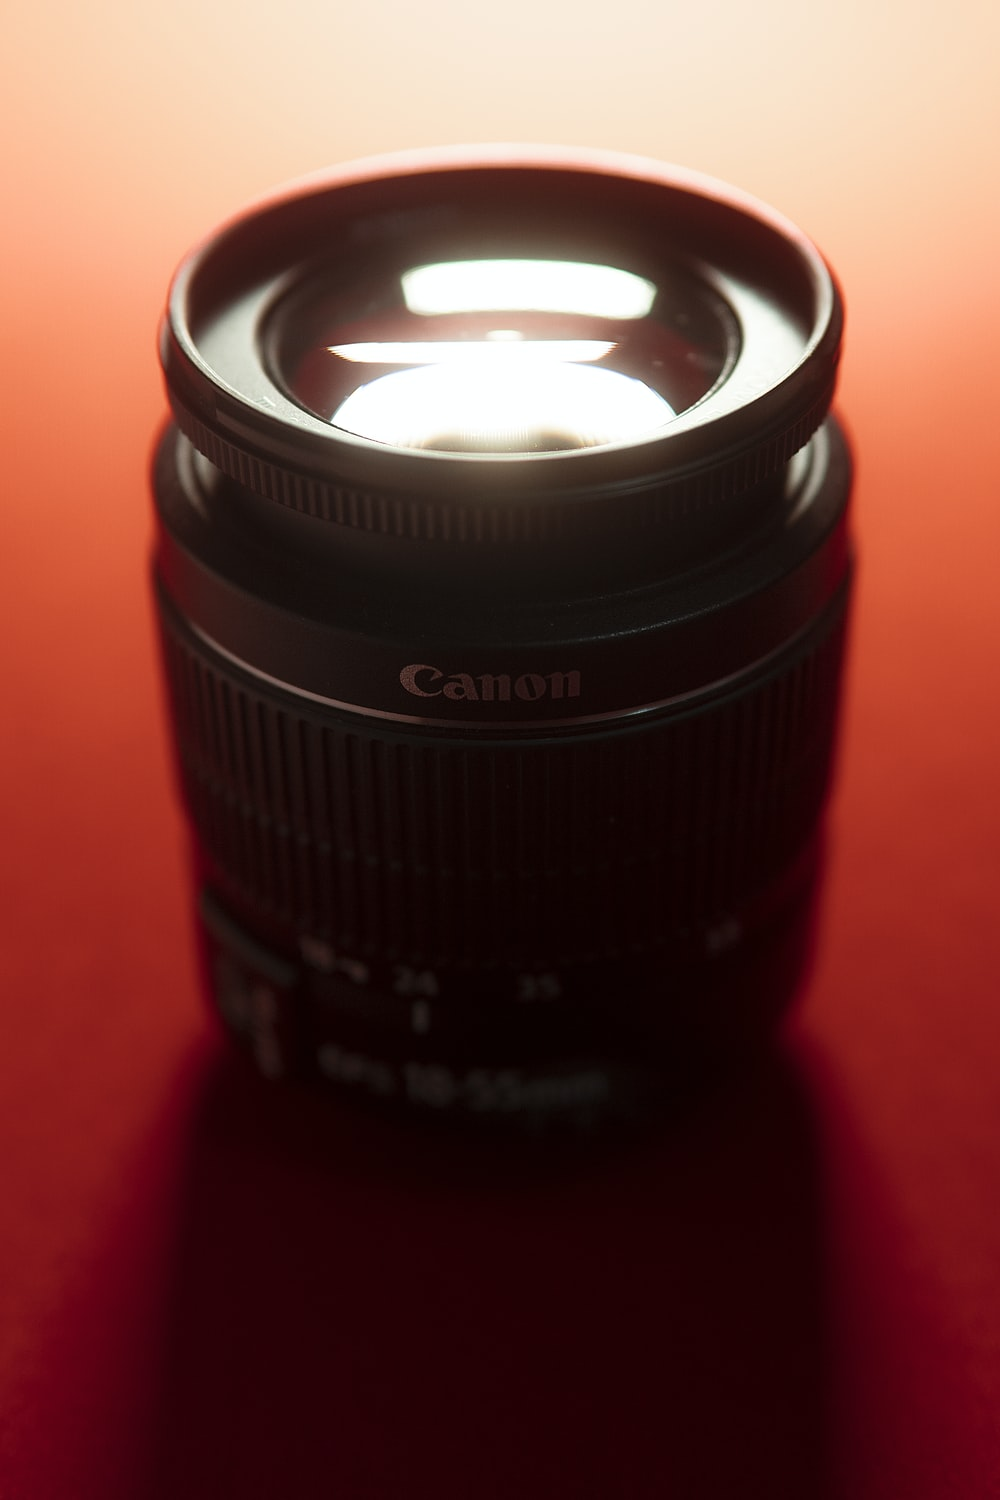 black Canon camera lens on red surface